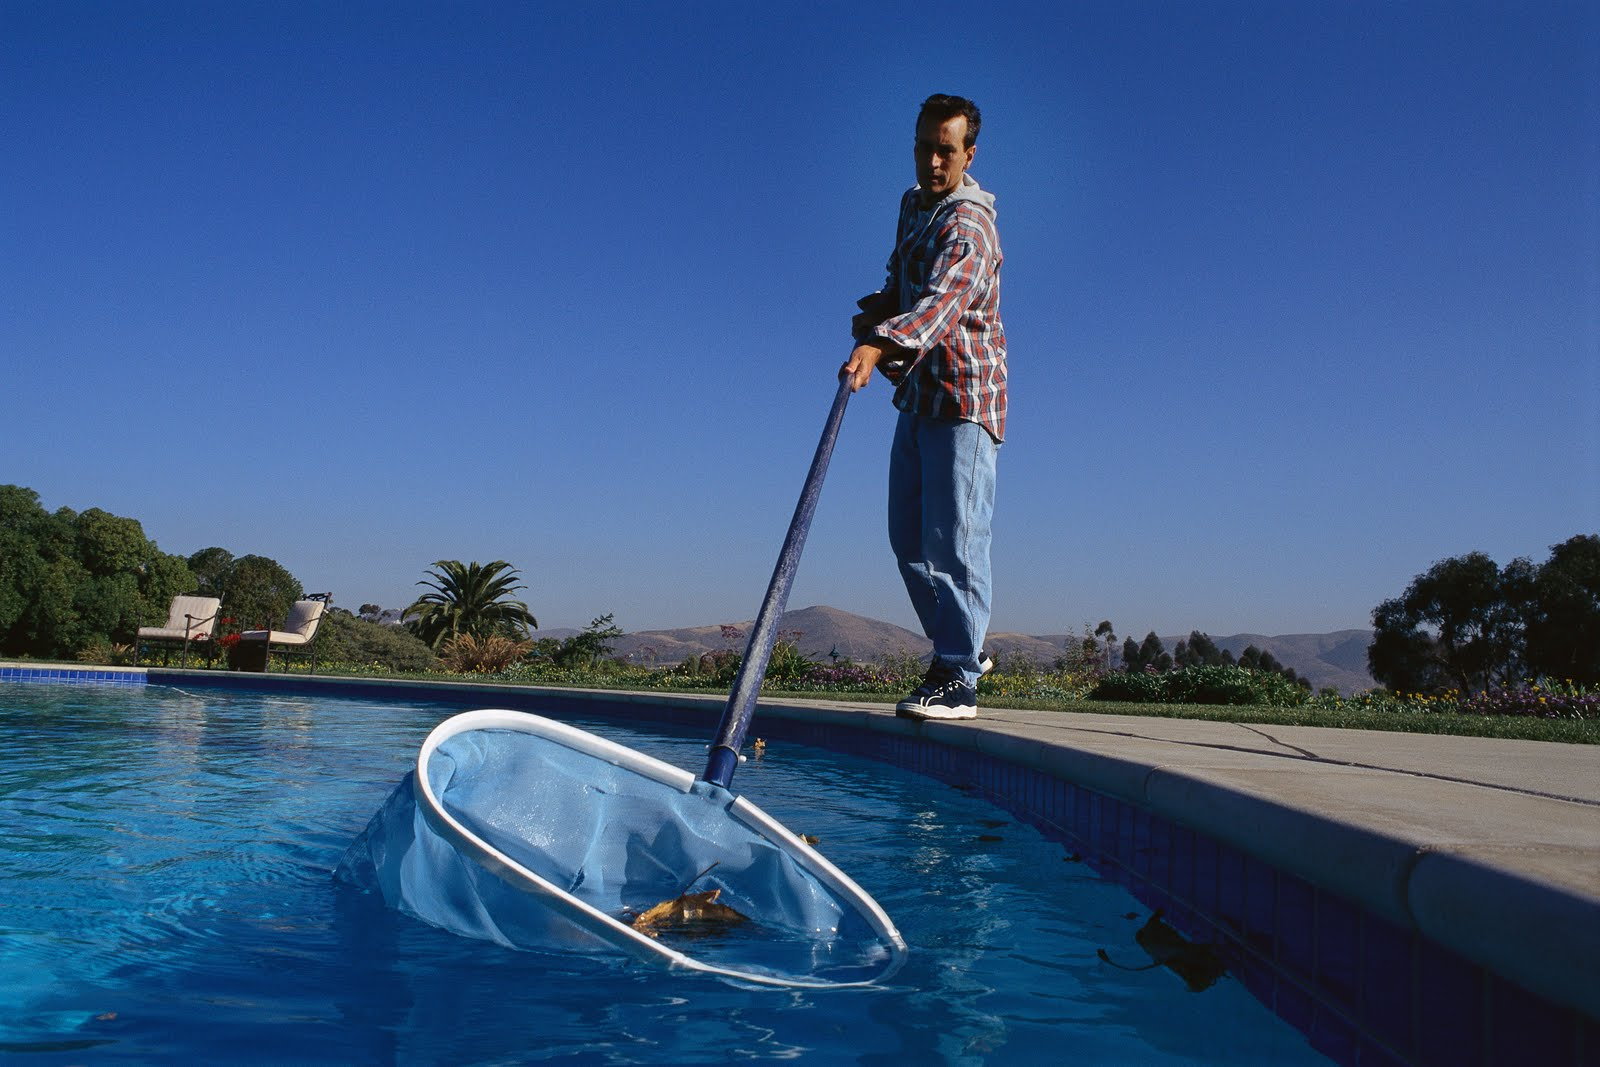 Blame it on the pool guy for Pool service